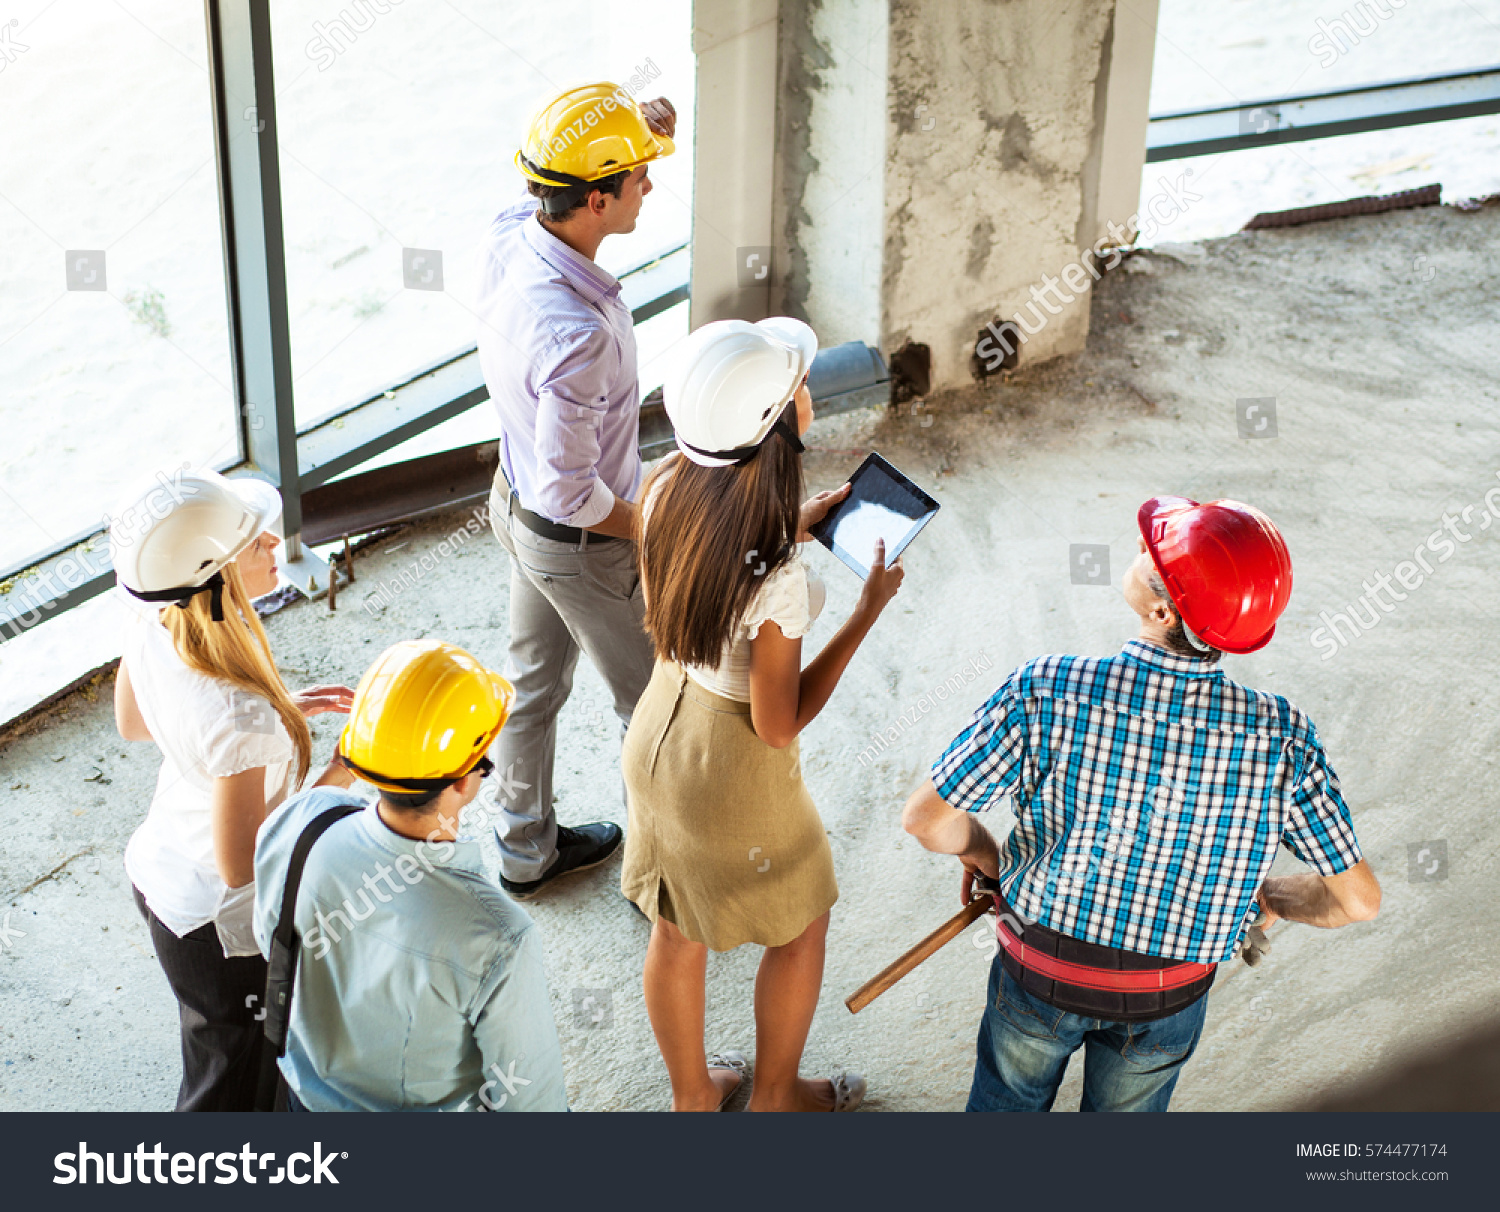 stock-photo-group-of-engineers-and-experts-discuss-about-construction-site-walking-through-building-site-574477174